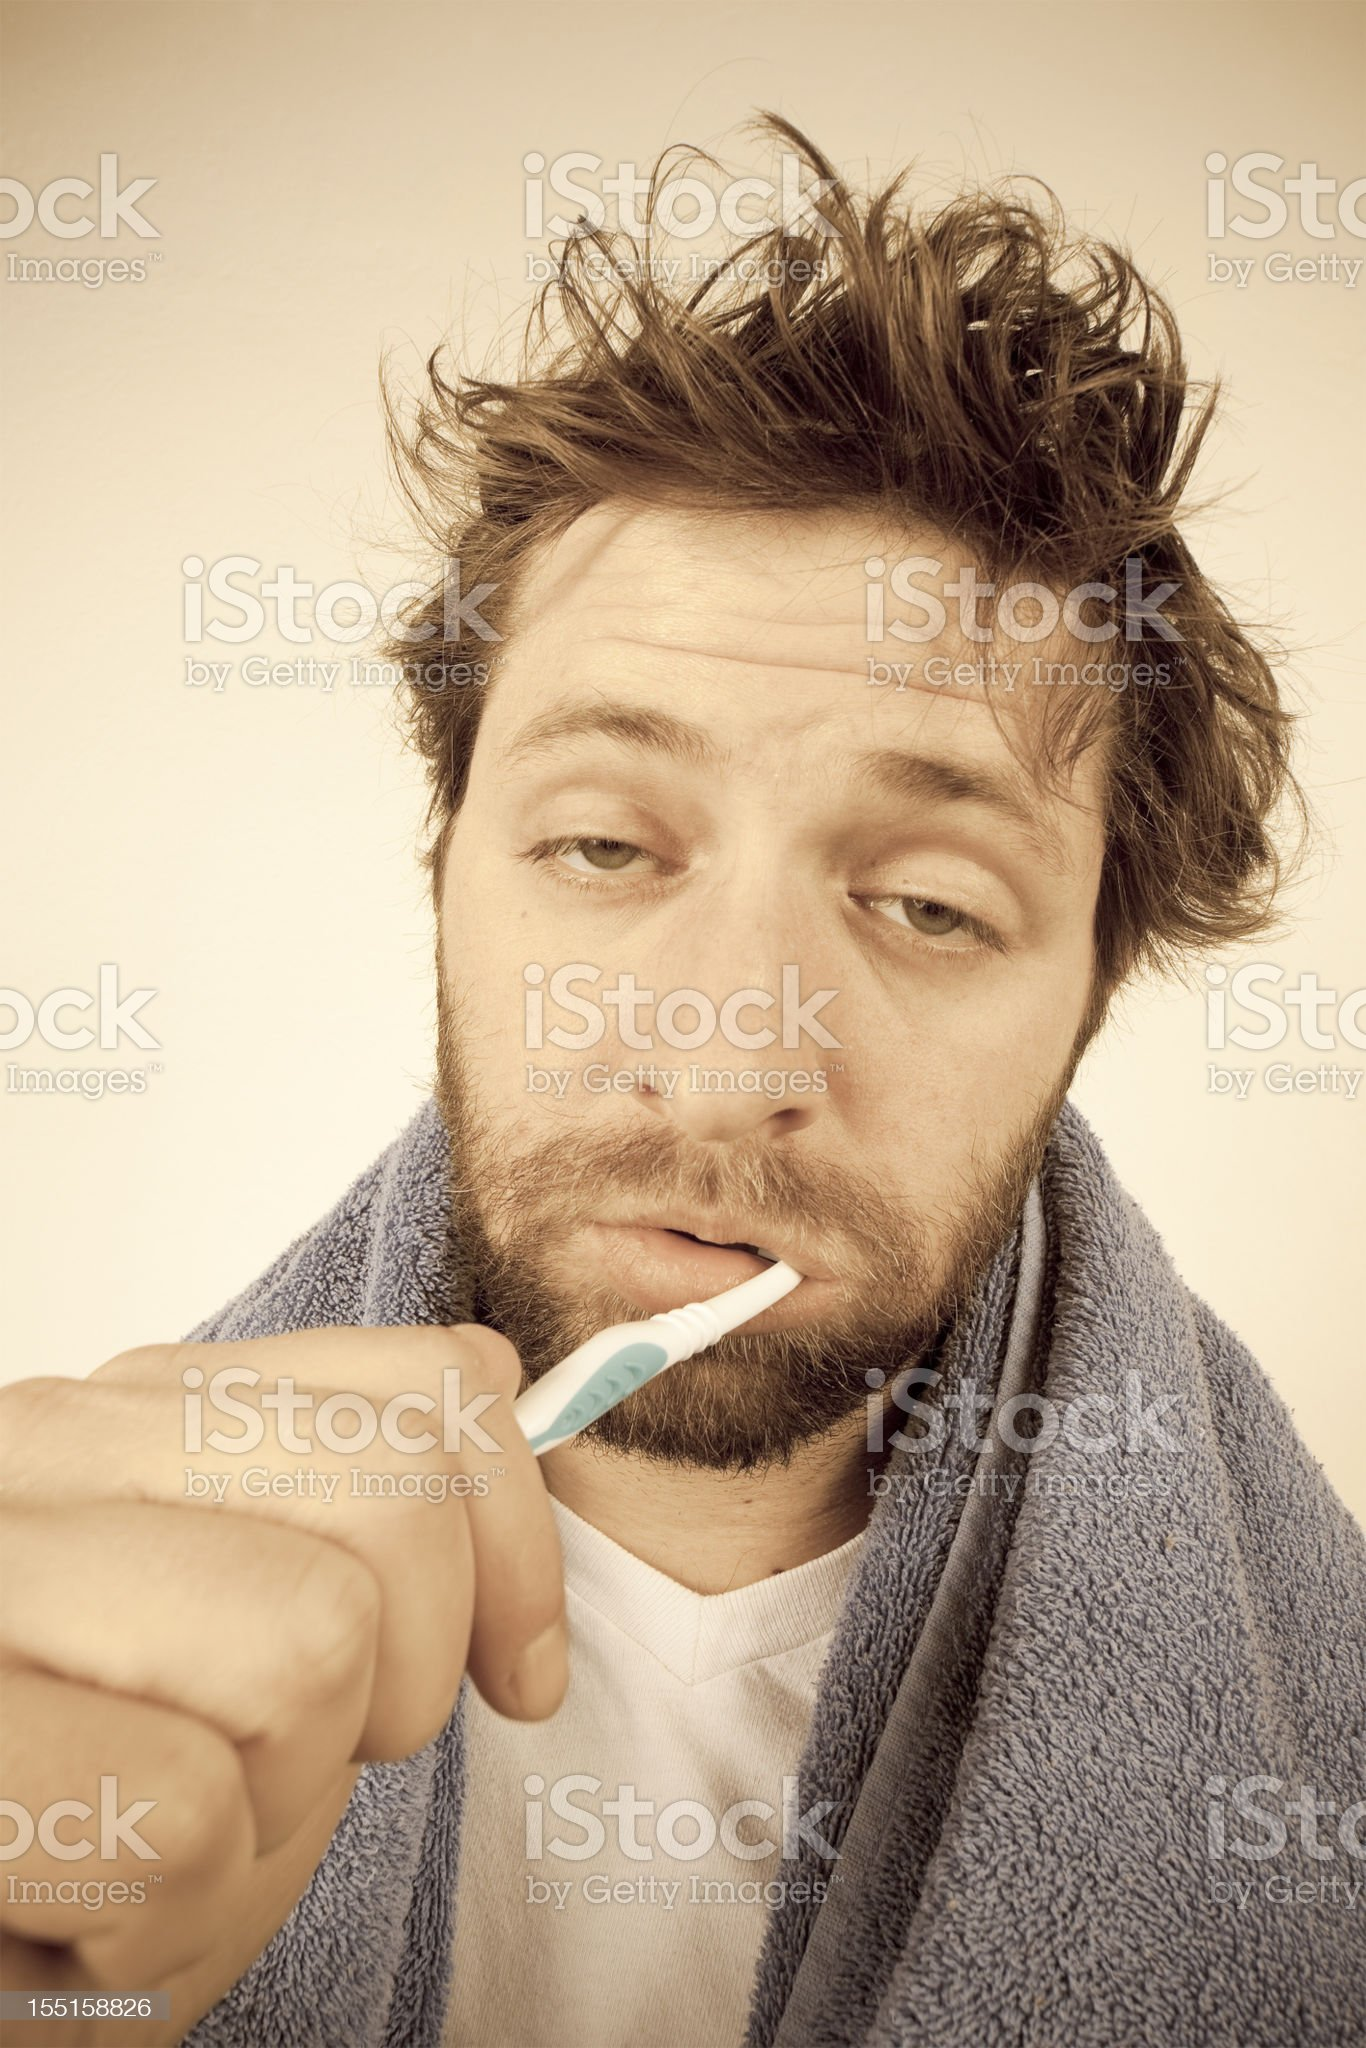 Morning Routine - Brush Your Teeth royalty-free stock photo